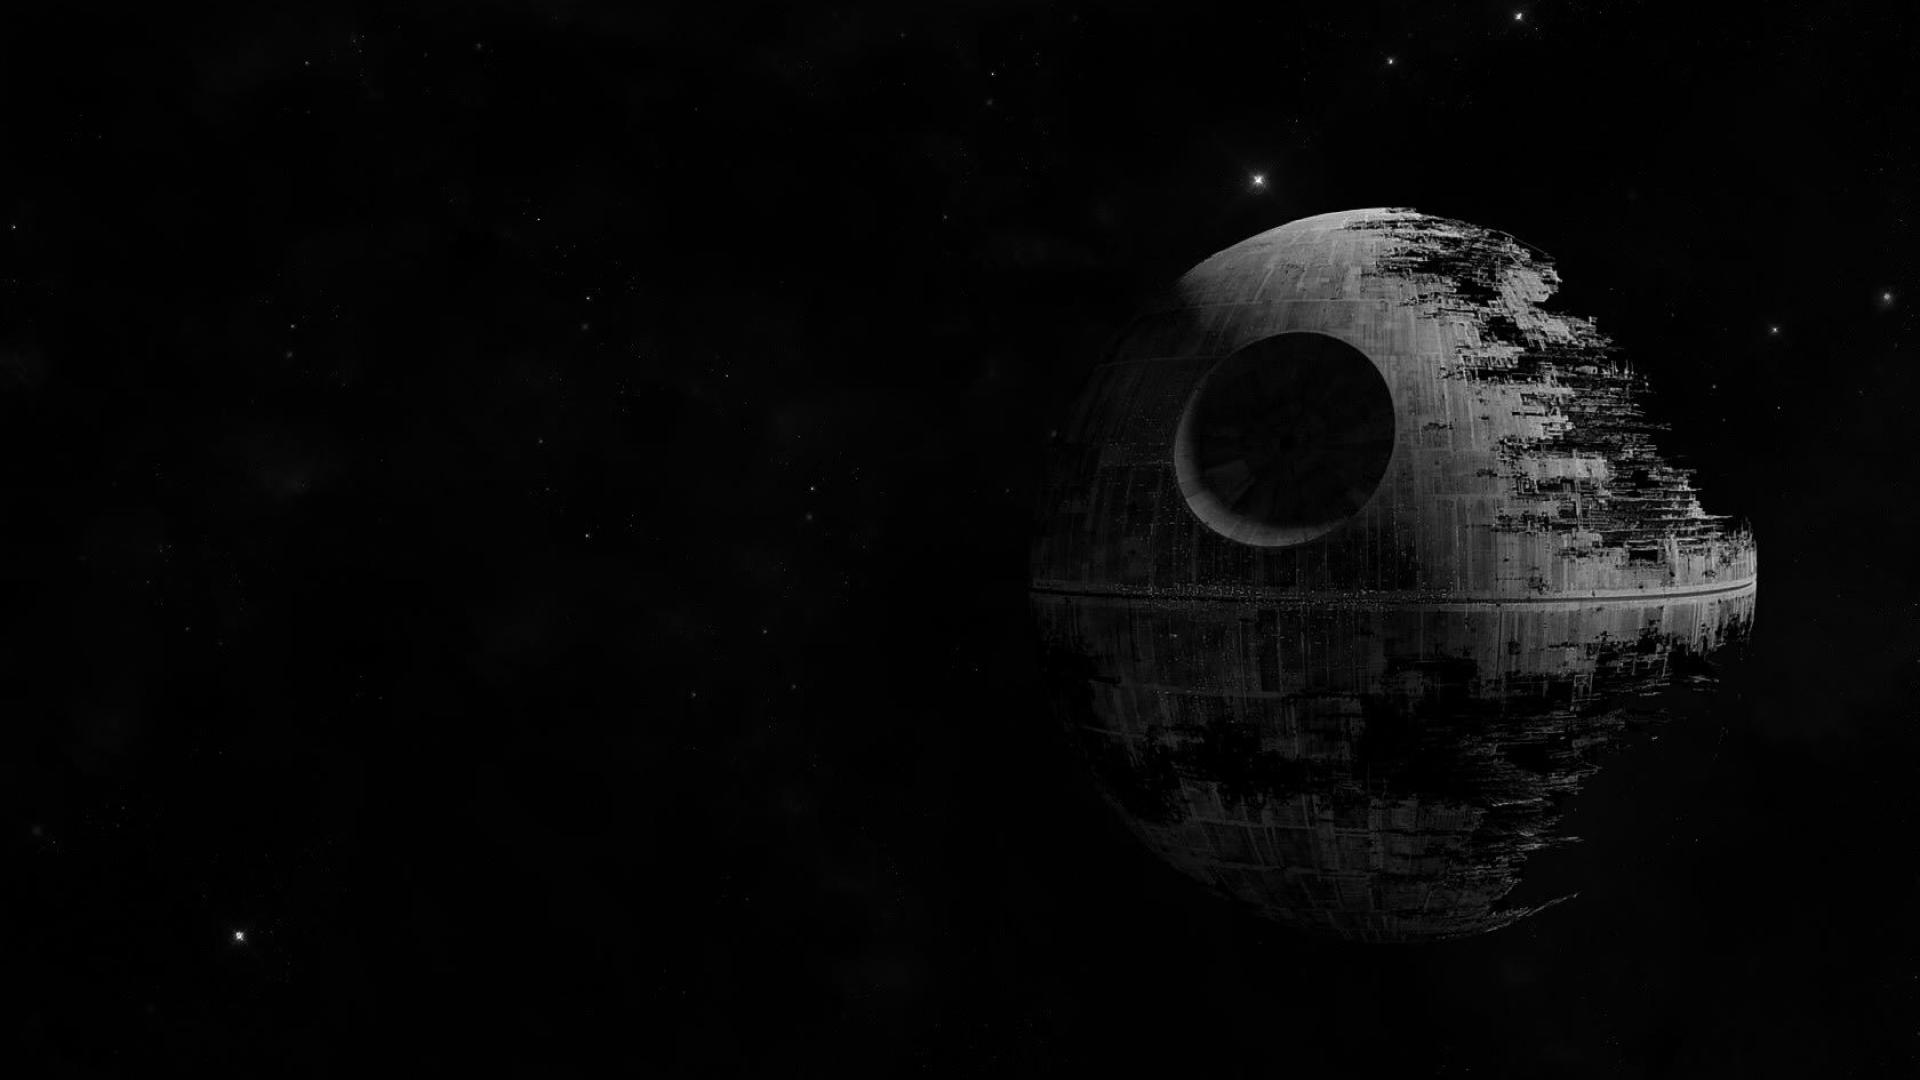 Star Wars Wallpaper, Star Wars Backgrounds Pack V 83HWW